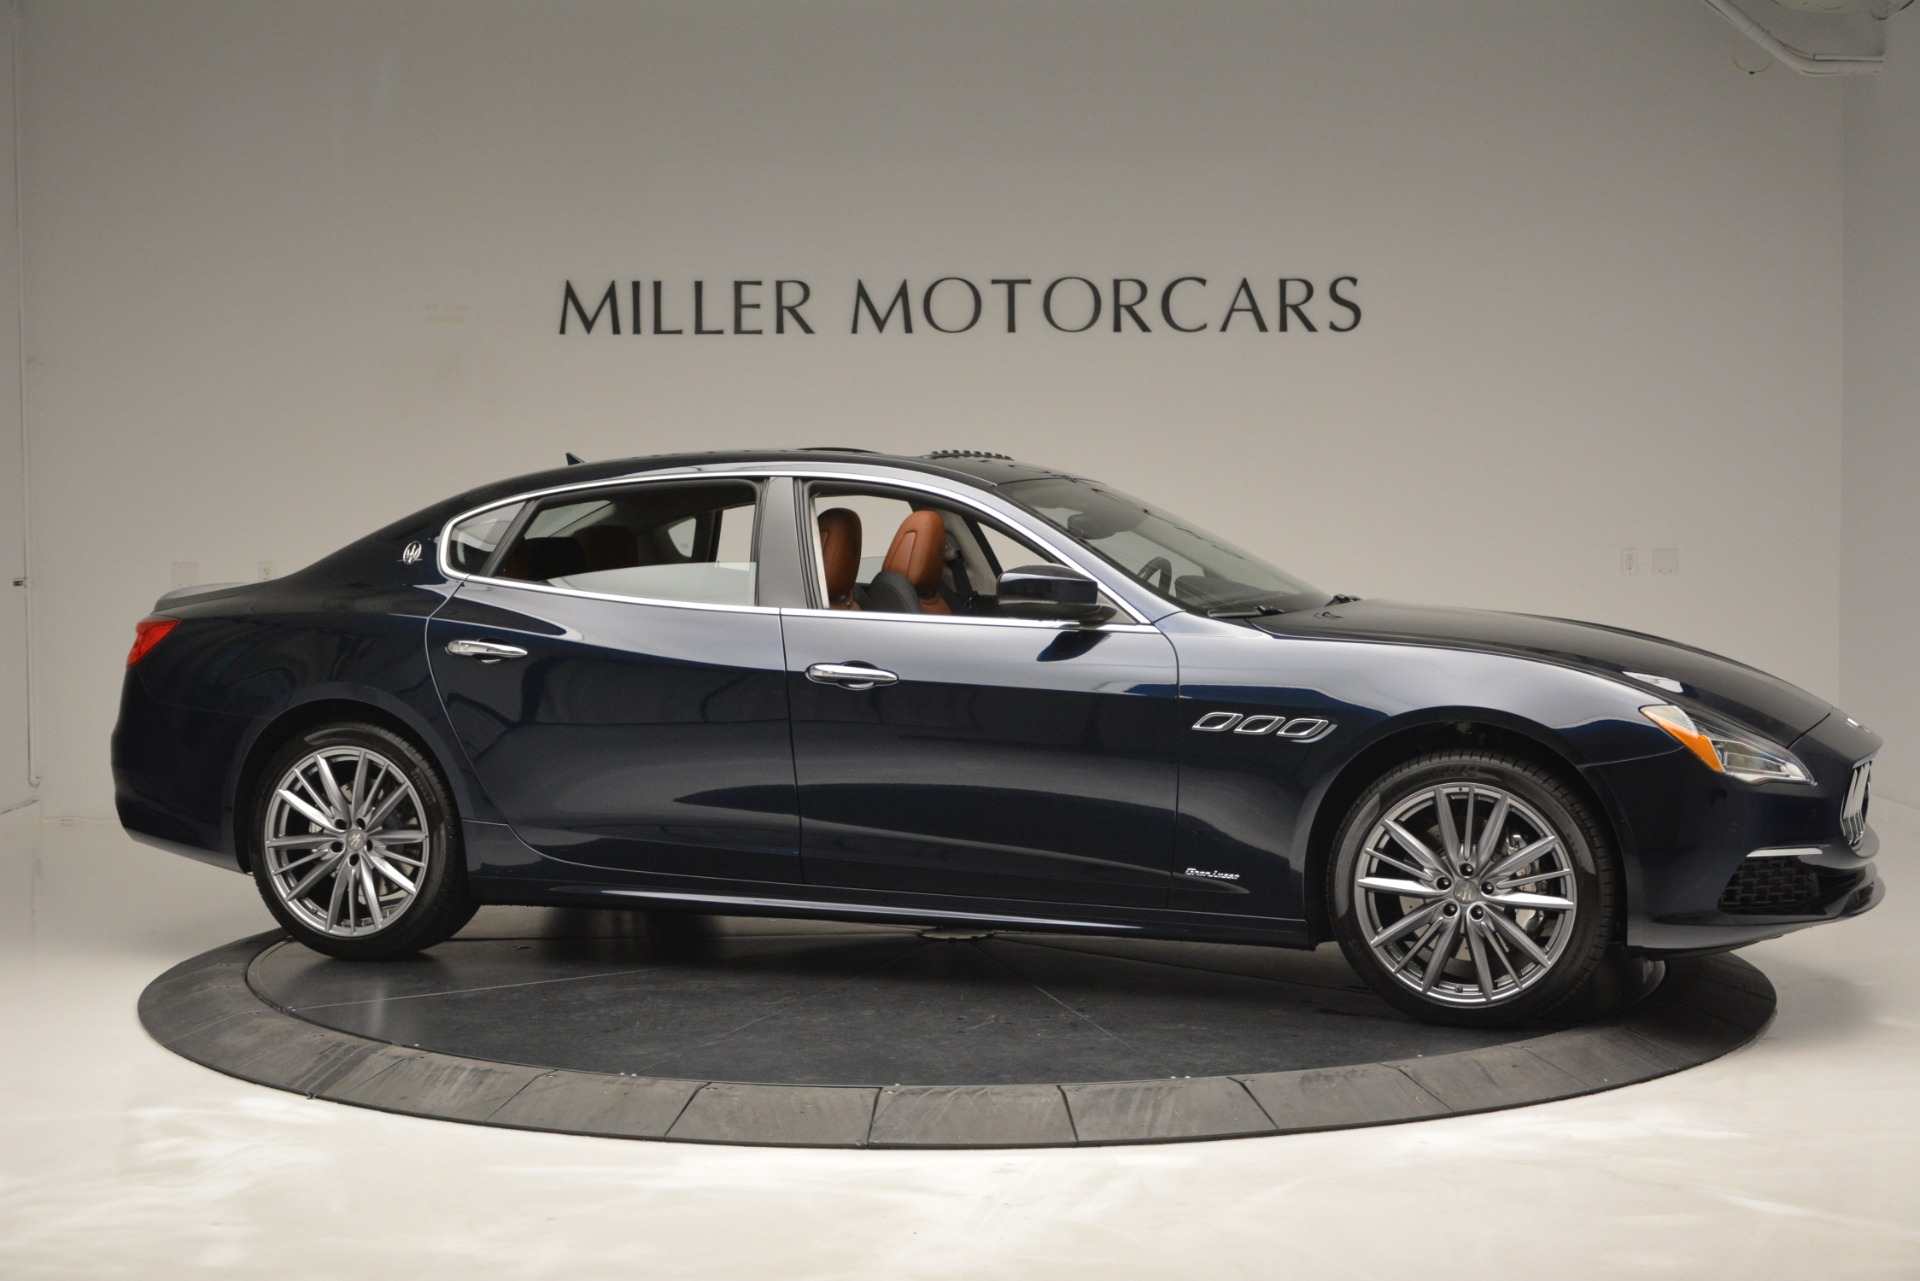 New 2019 Maserati Quattroporte S Q4 GranLusso Edizione Nobile For Sale In Greenwich, CT 2898_p15